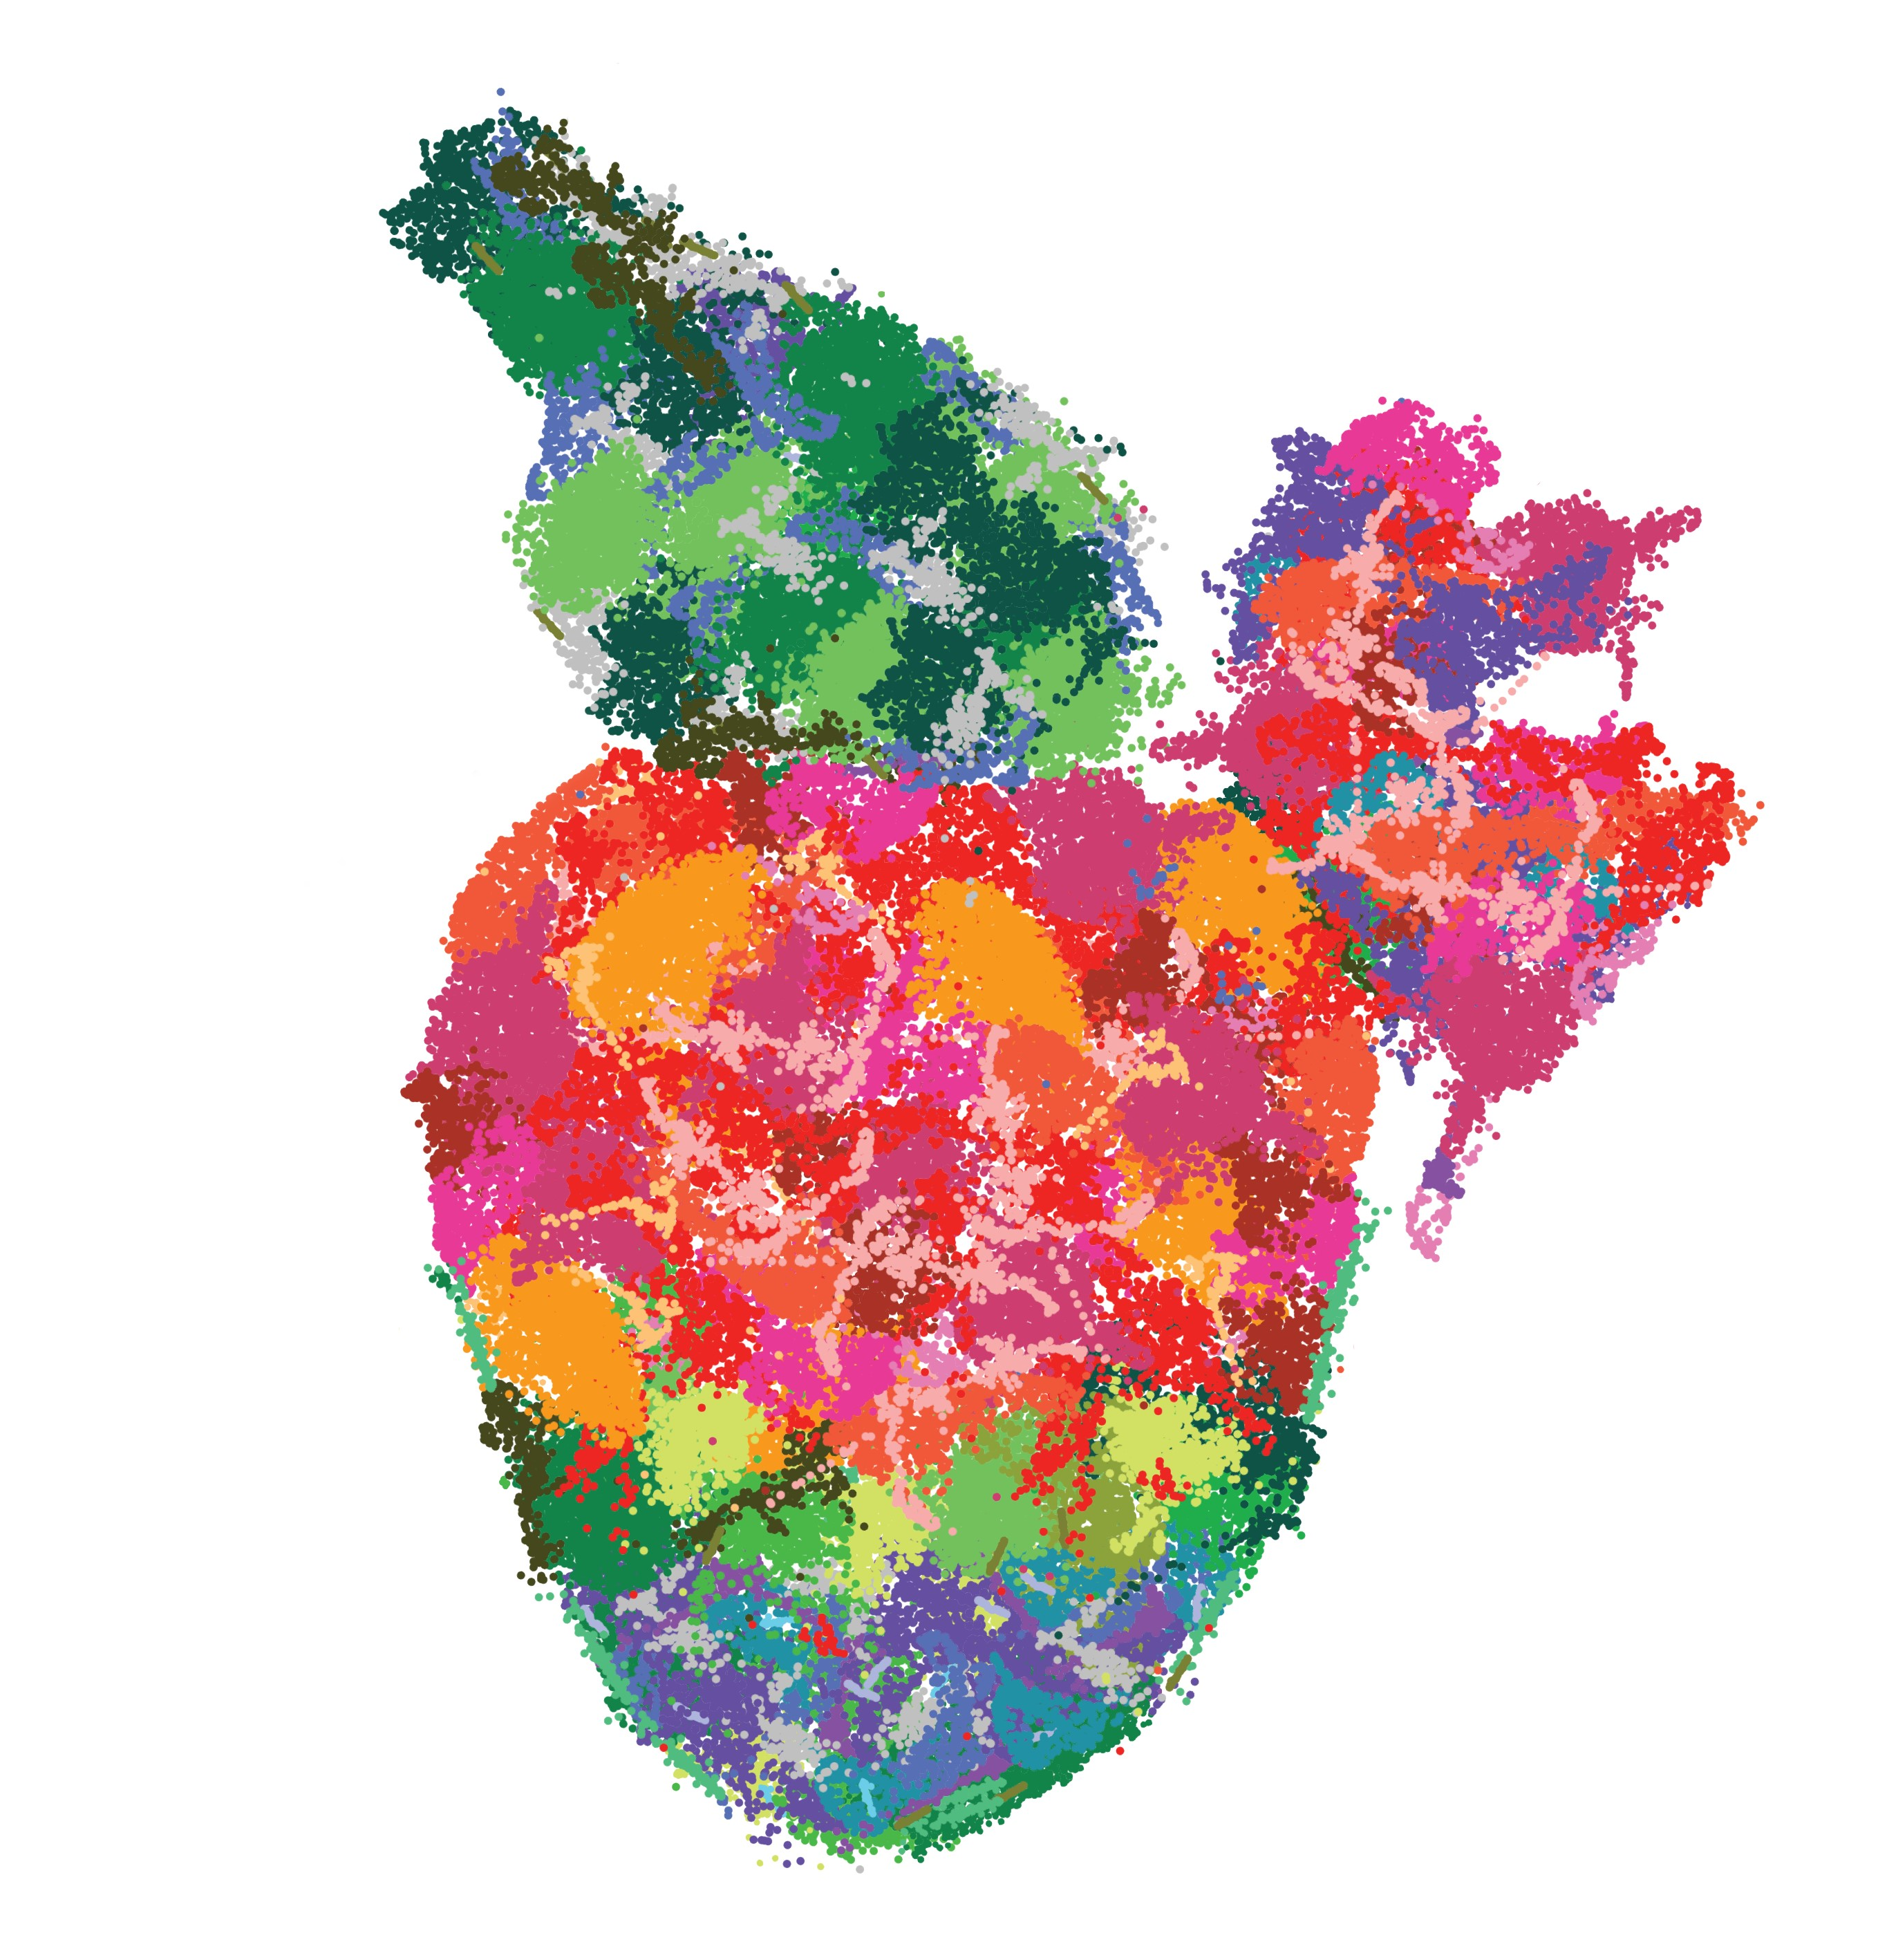 Multi-coloured image of adult zebrafish heart to show single cell sequencing data.